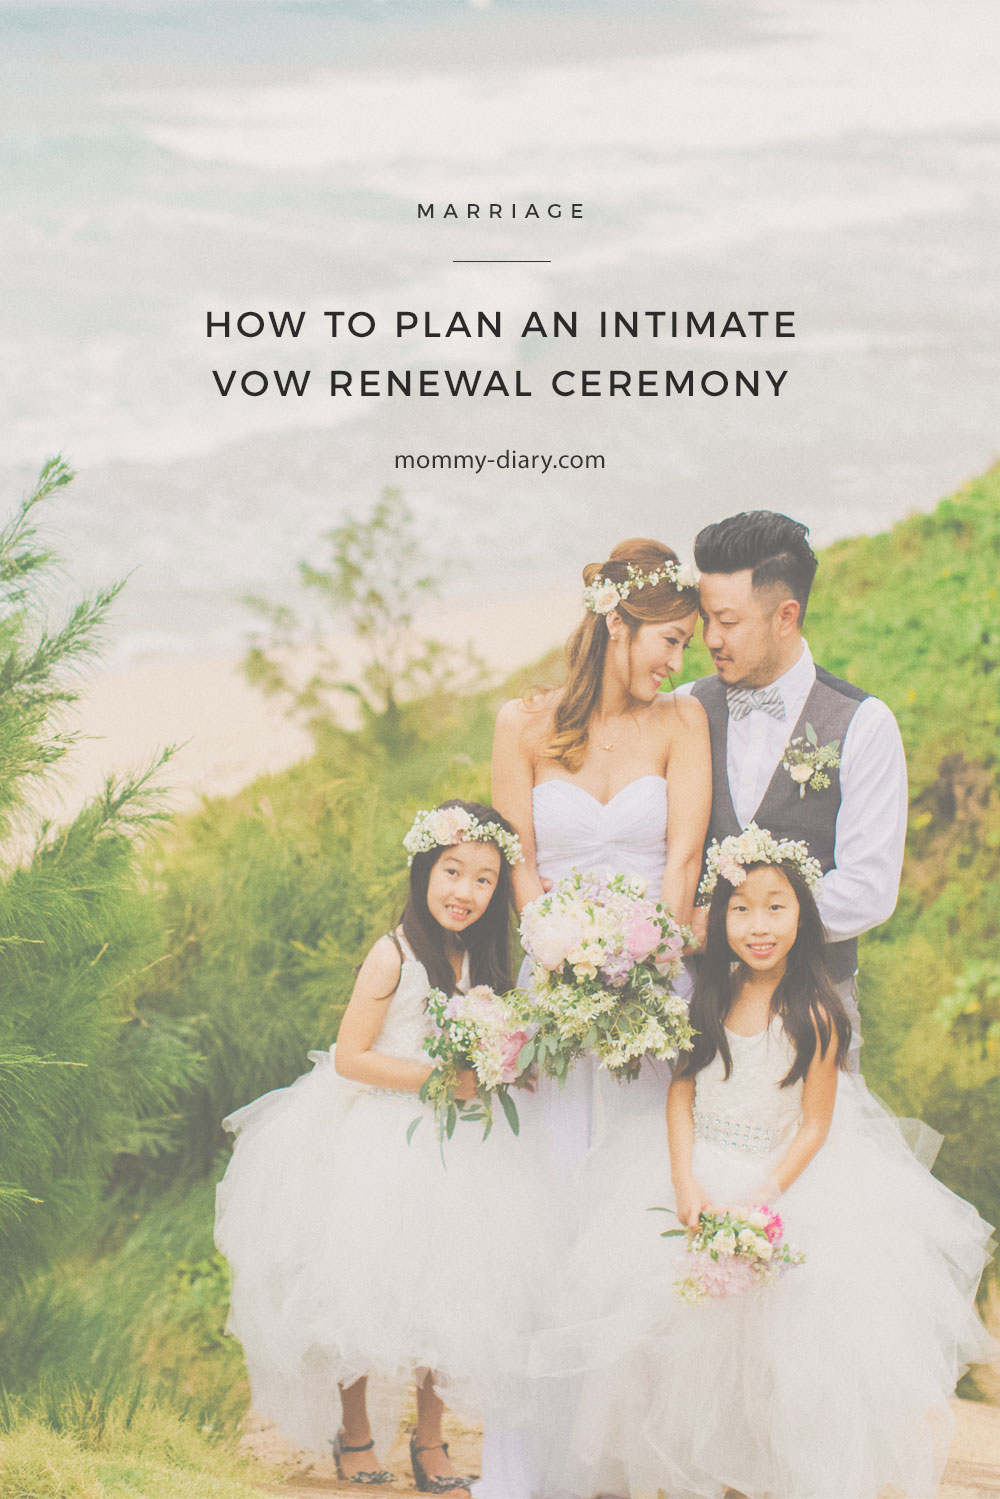 How To Plan An Intimate Vow Renewal Ceremony Mommy Diary